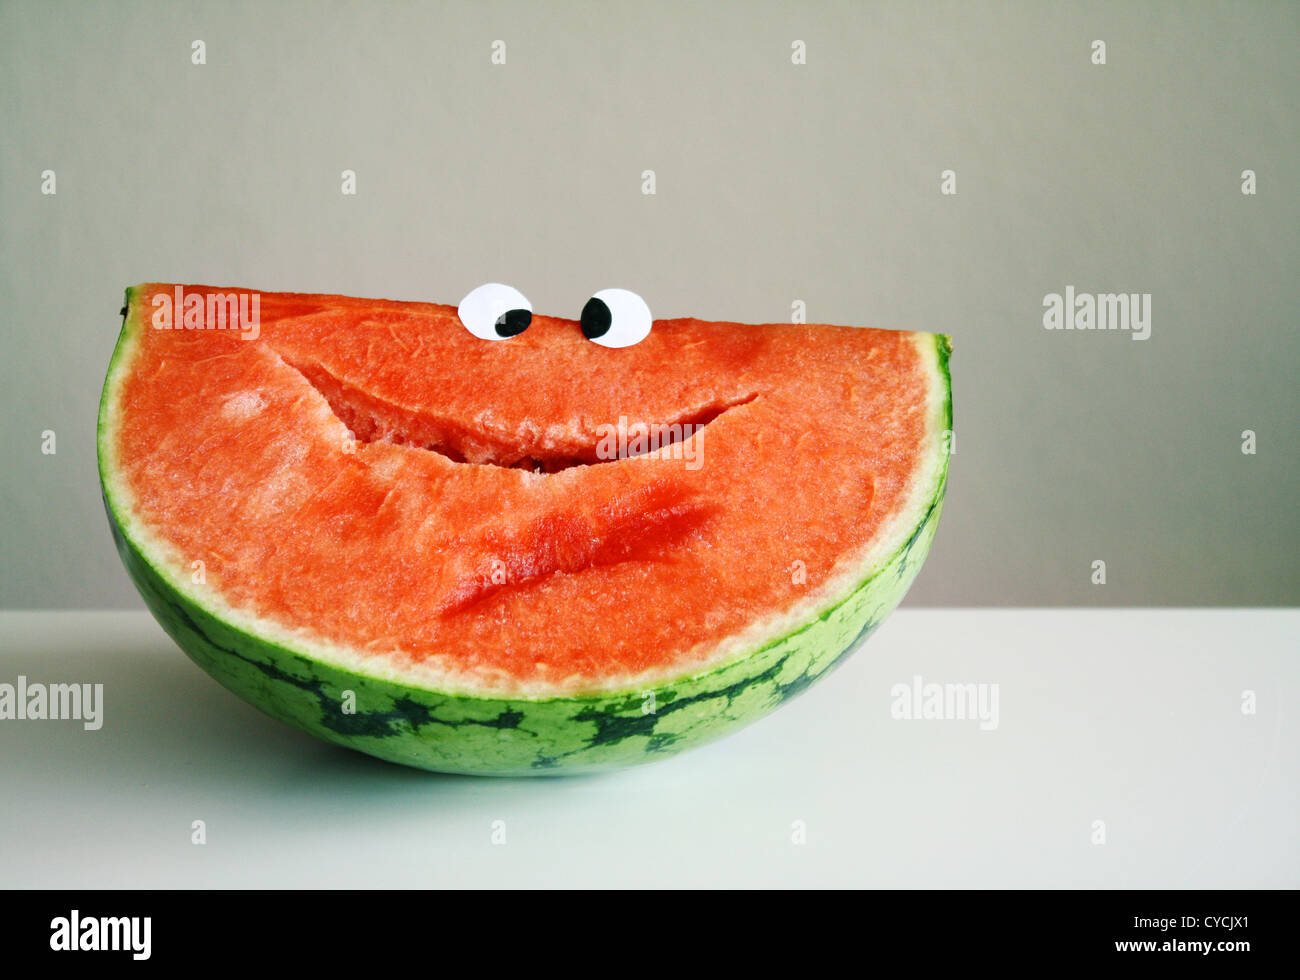 Smiling,fruits,watermelon Photo Stock